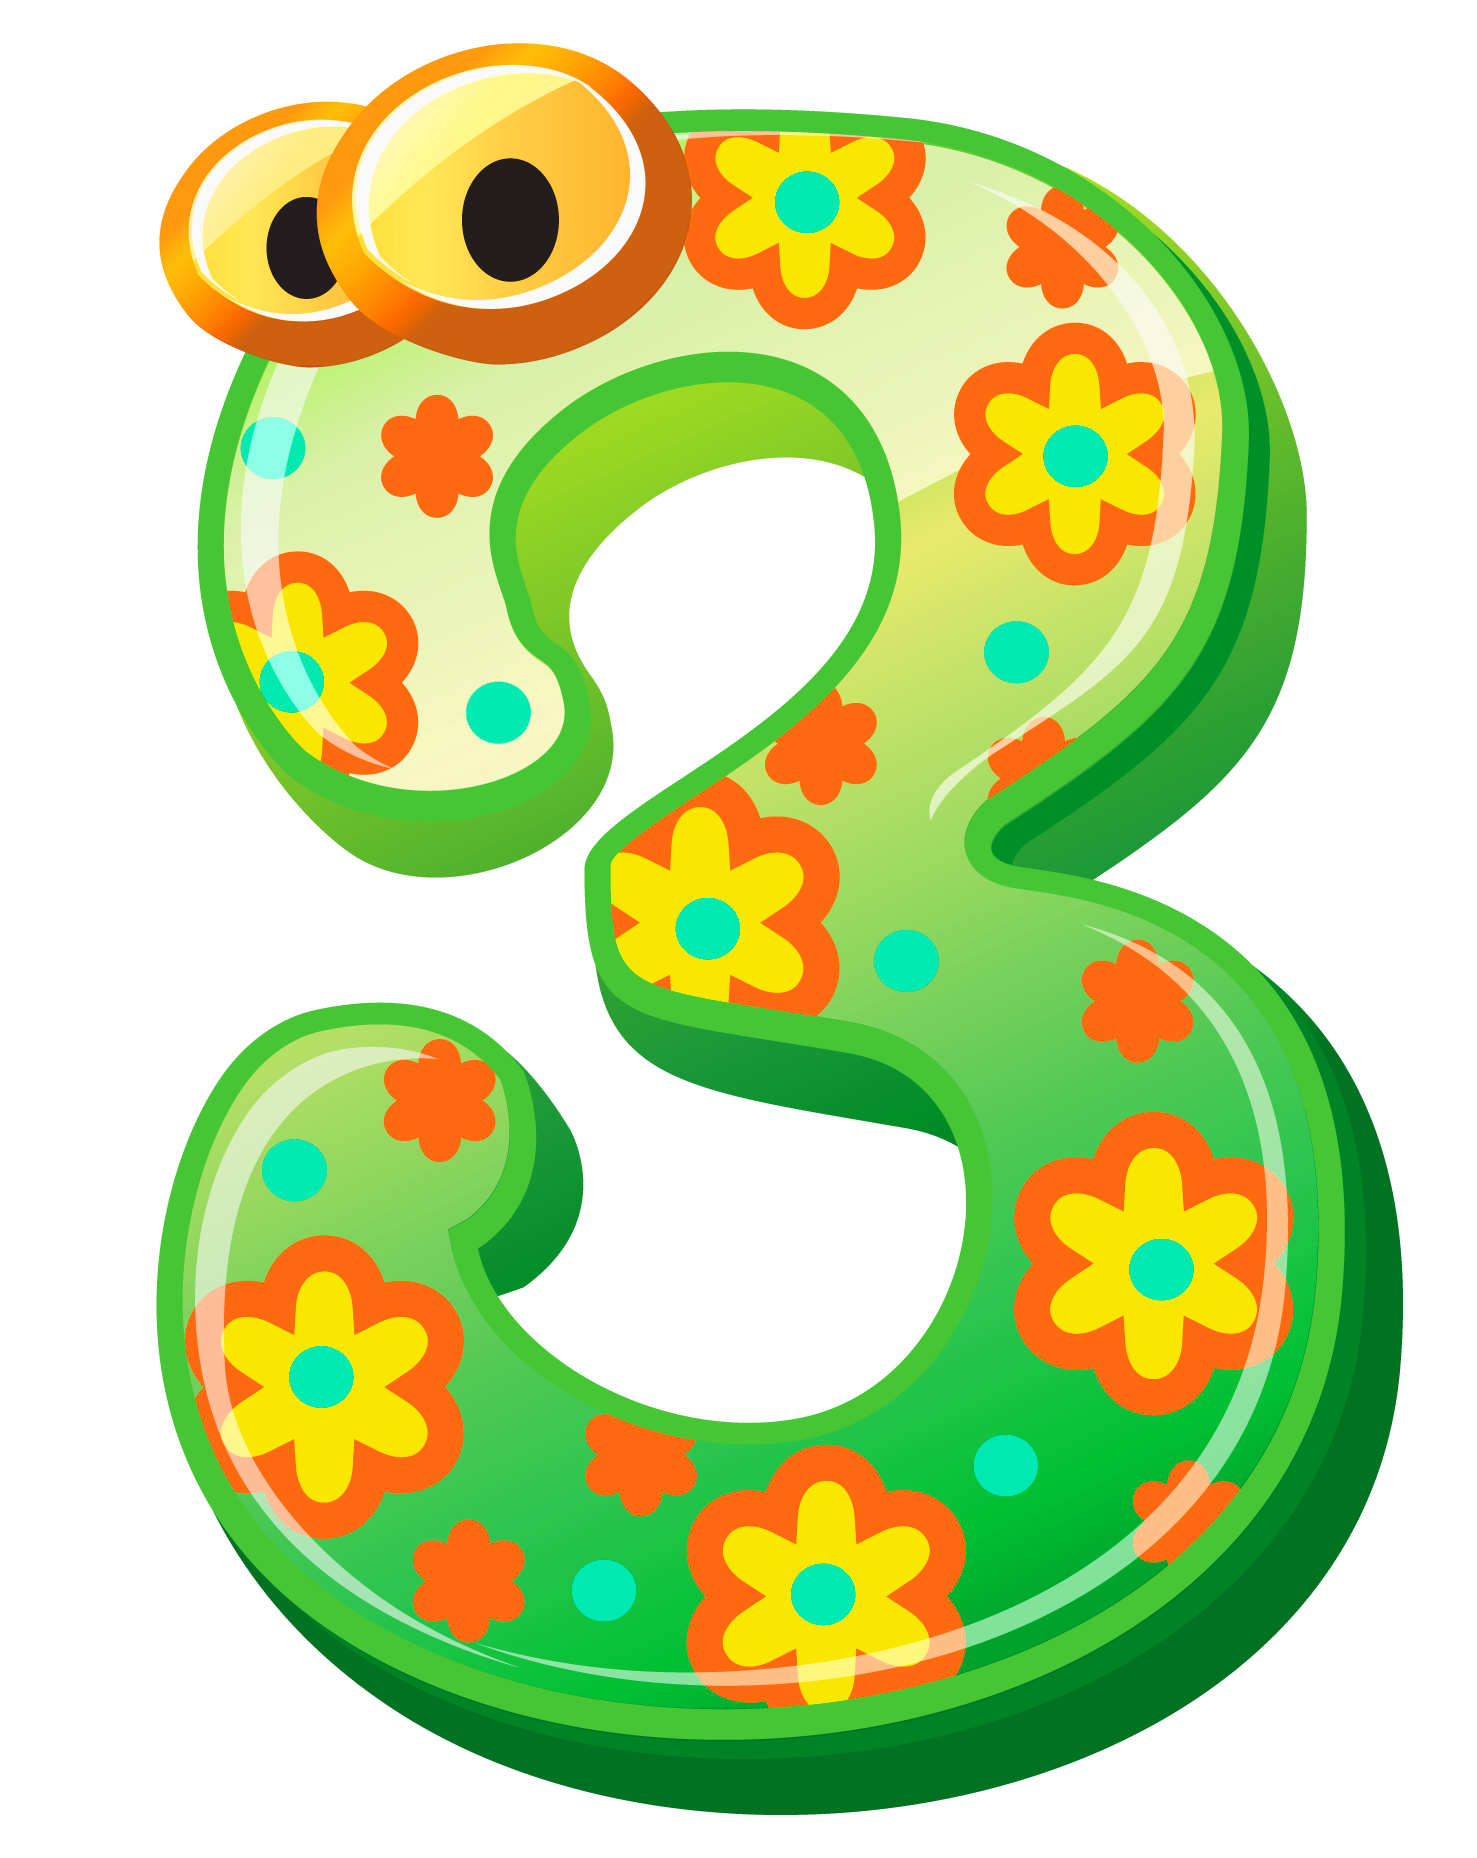 Numbers clipart learning. Cute number three png